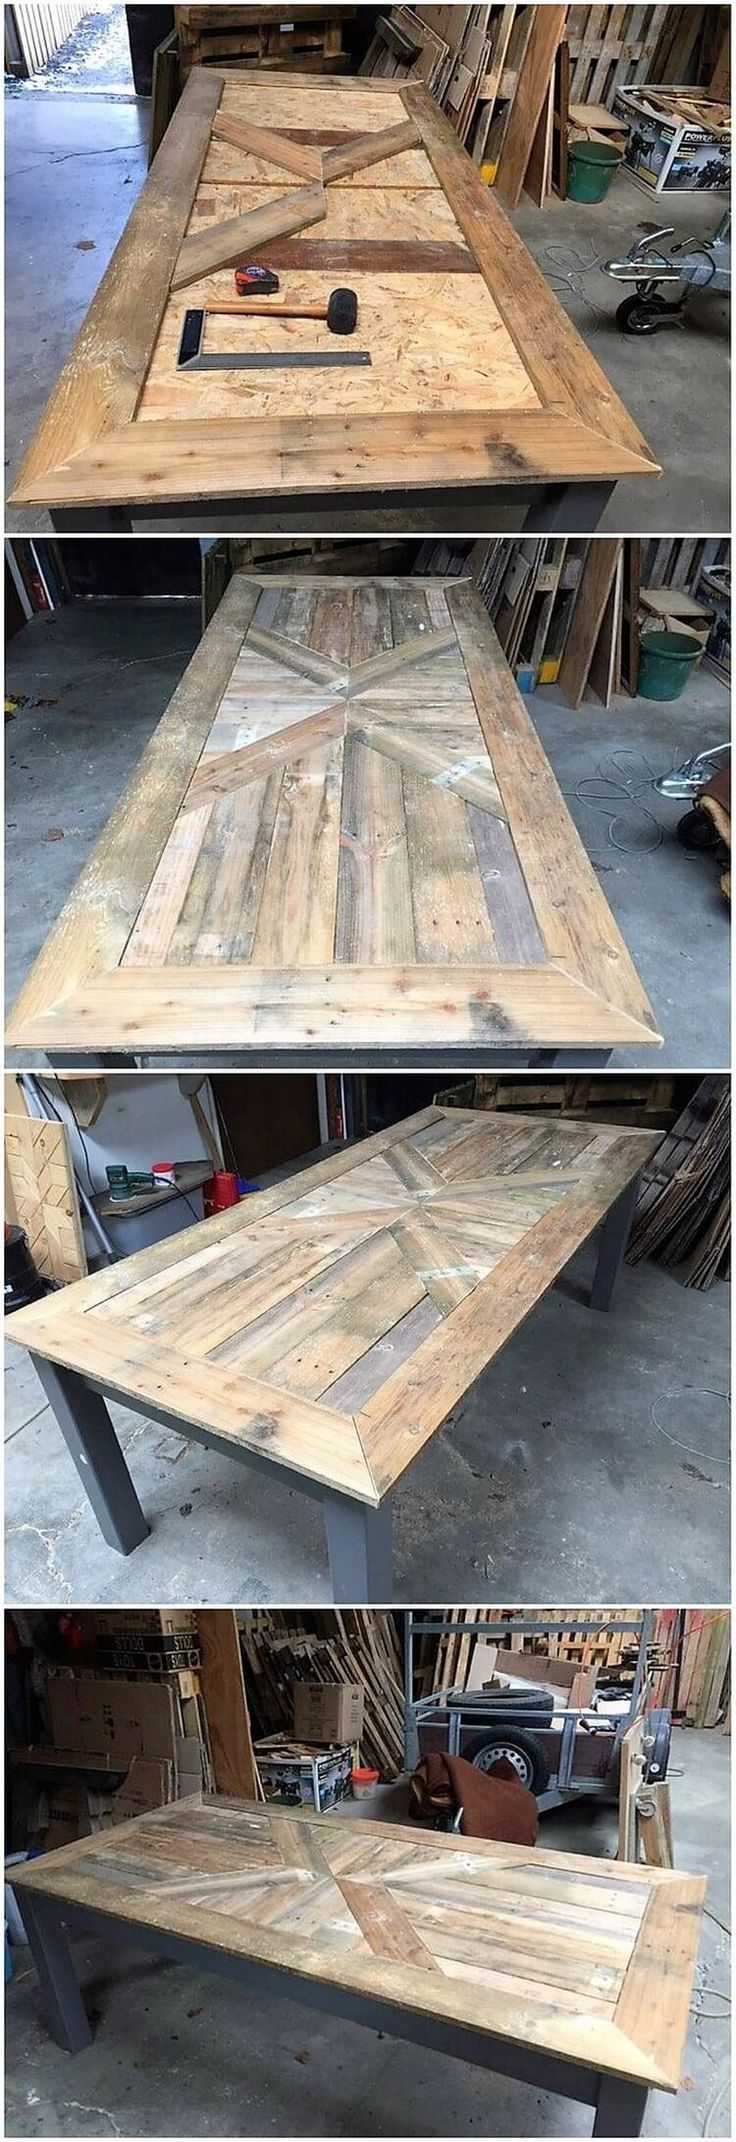 Incredible Ideas for Upcycling Shipping Wooden Pallets #wood Pallets # Ideas #u … #WoodWorking